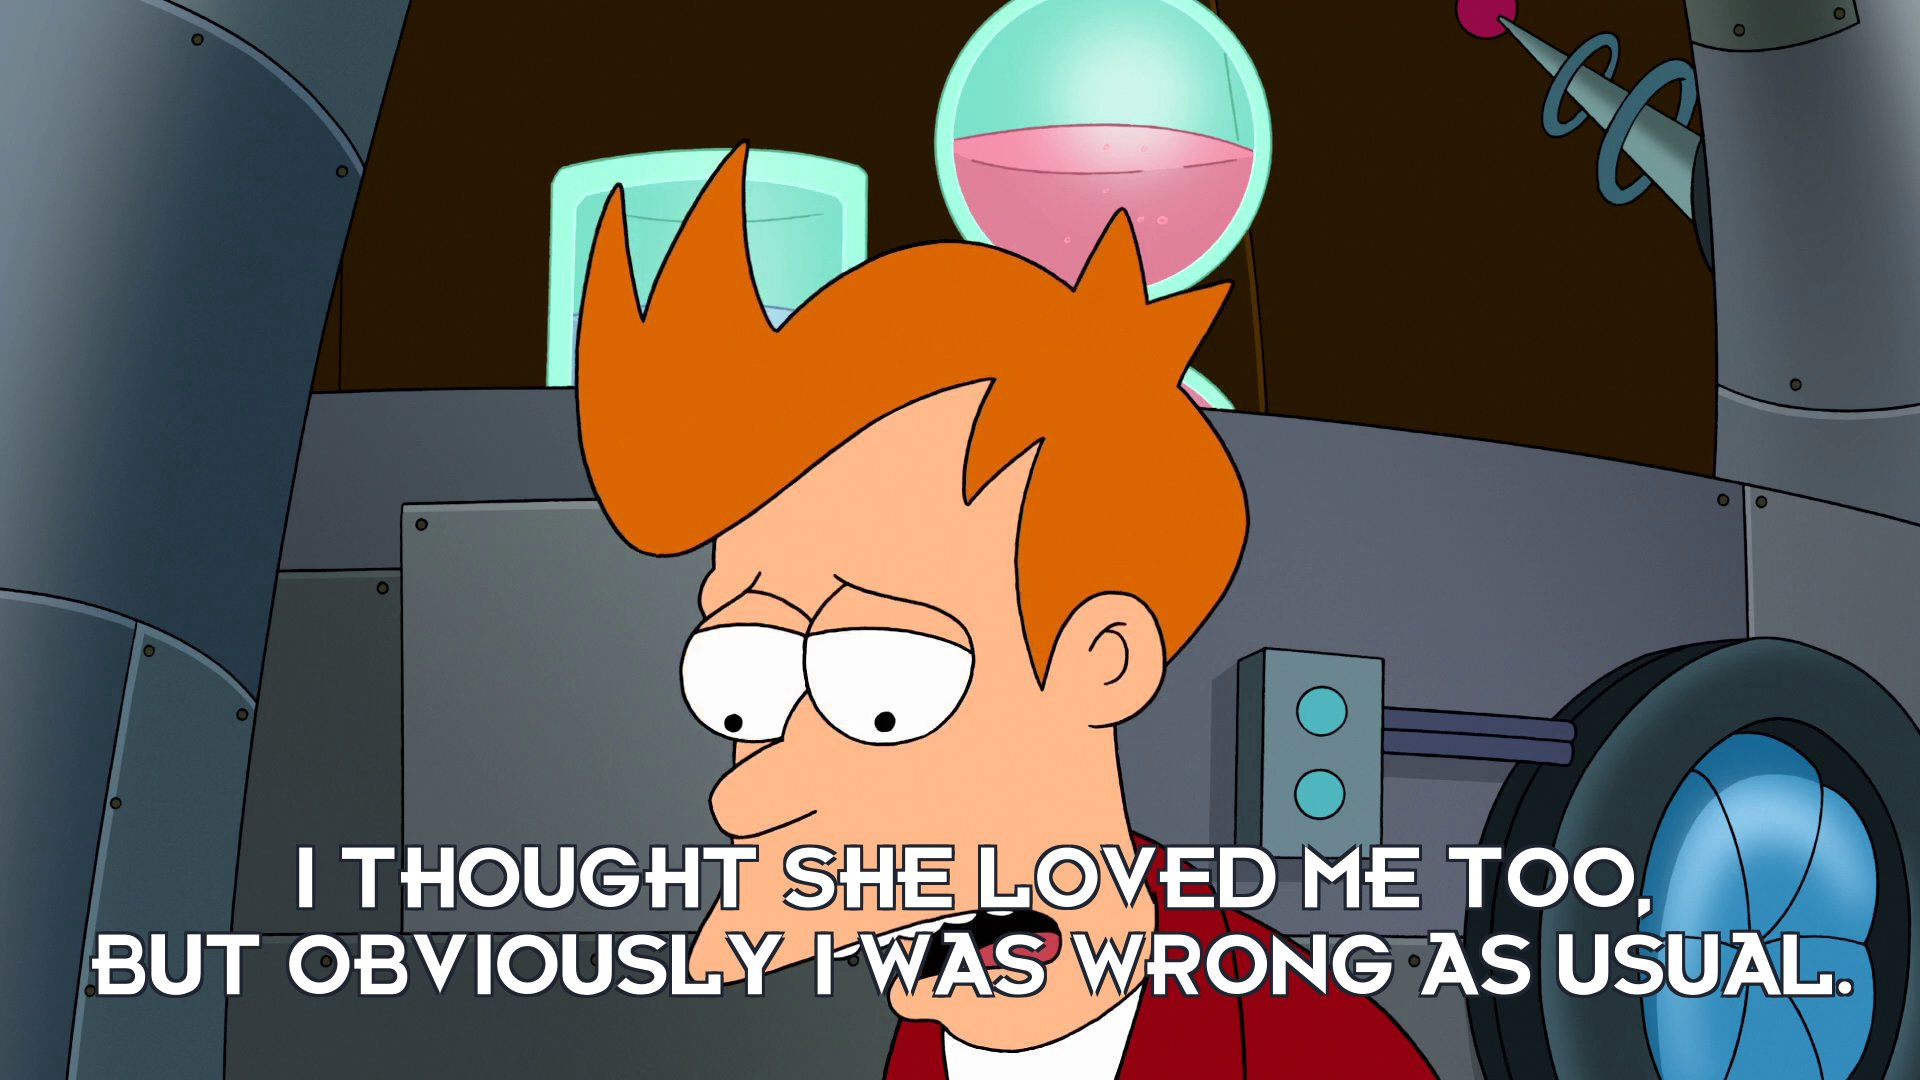 Philip J Fry: I thought she loved me too, but obviously I was wrong as usual.